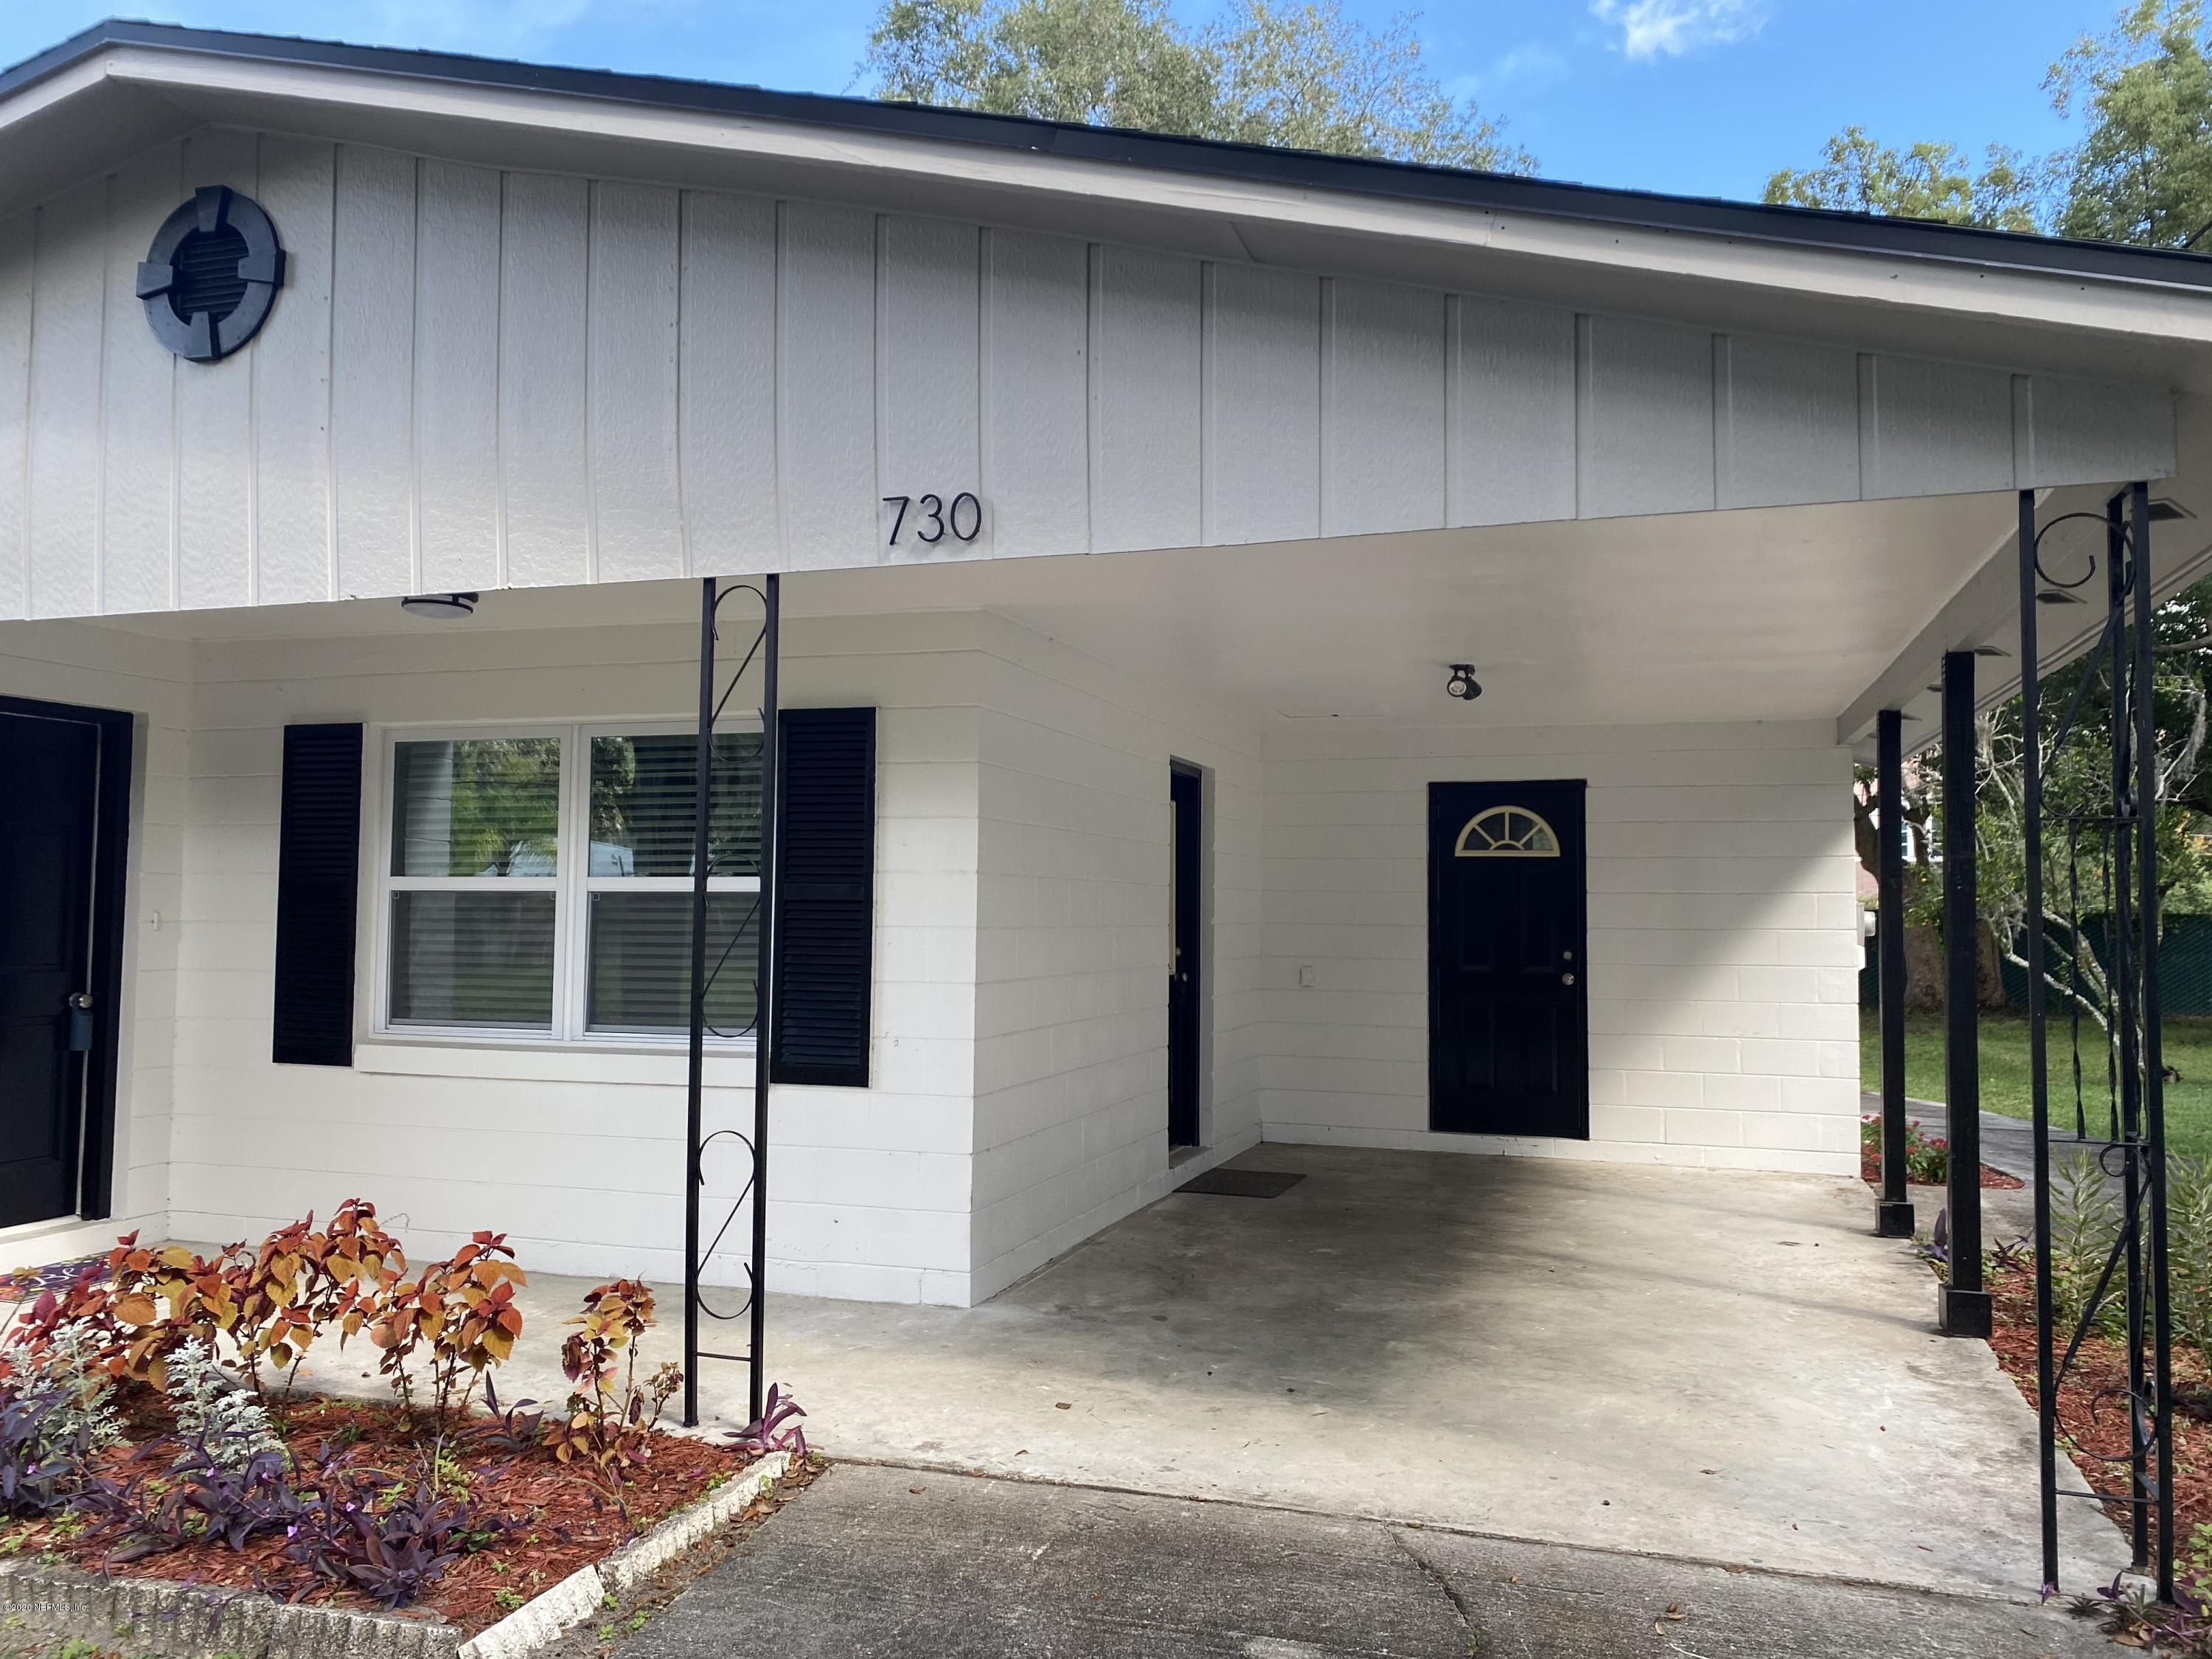 730 PINE, GREEN COVE SPRINGS, FLORIDA 32043, 3 Bedrooms Bedrooms, ,1 BathroomBathrooms,Residential,For sale,PINE,1080126